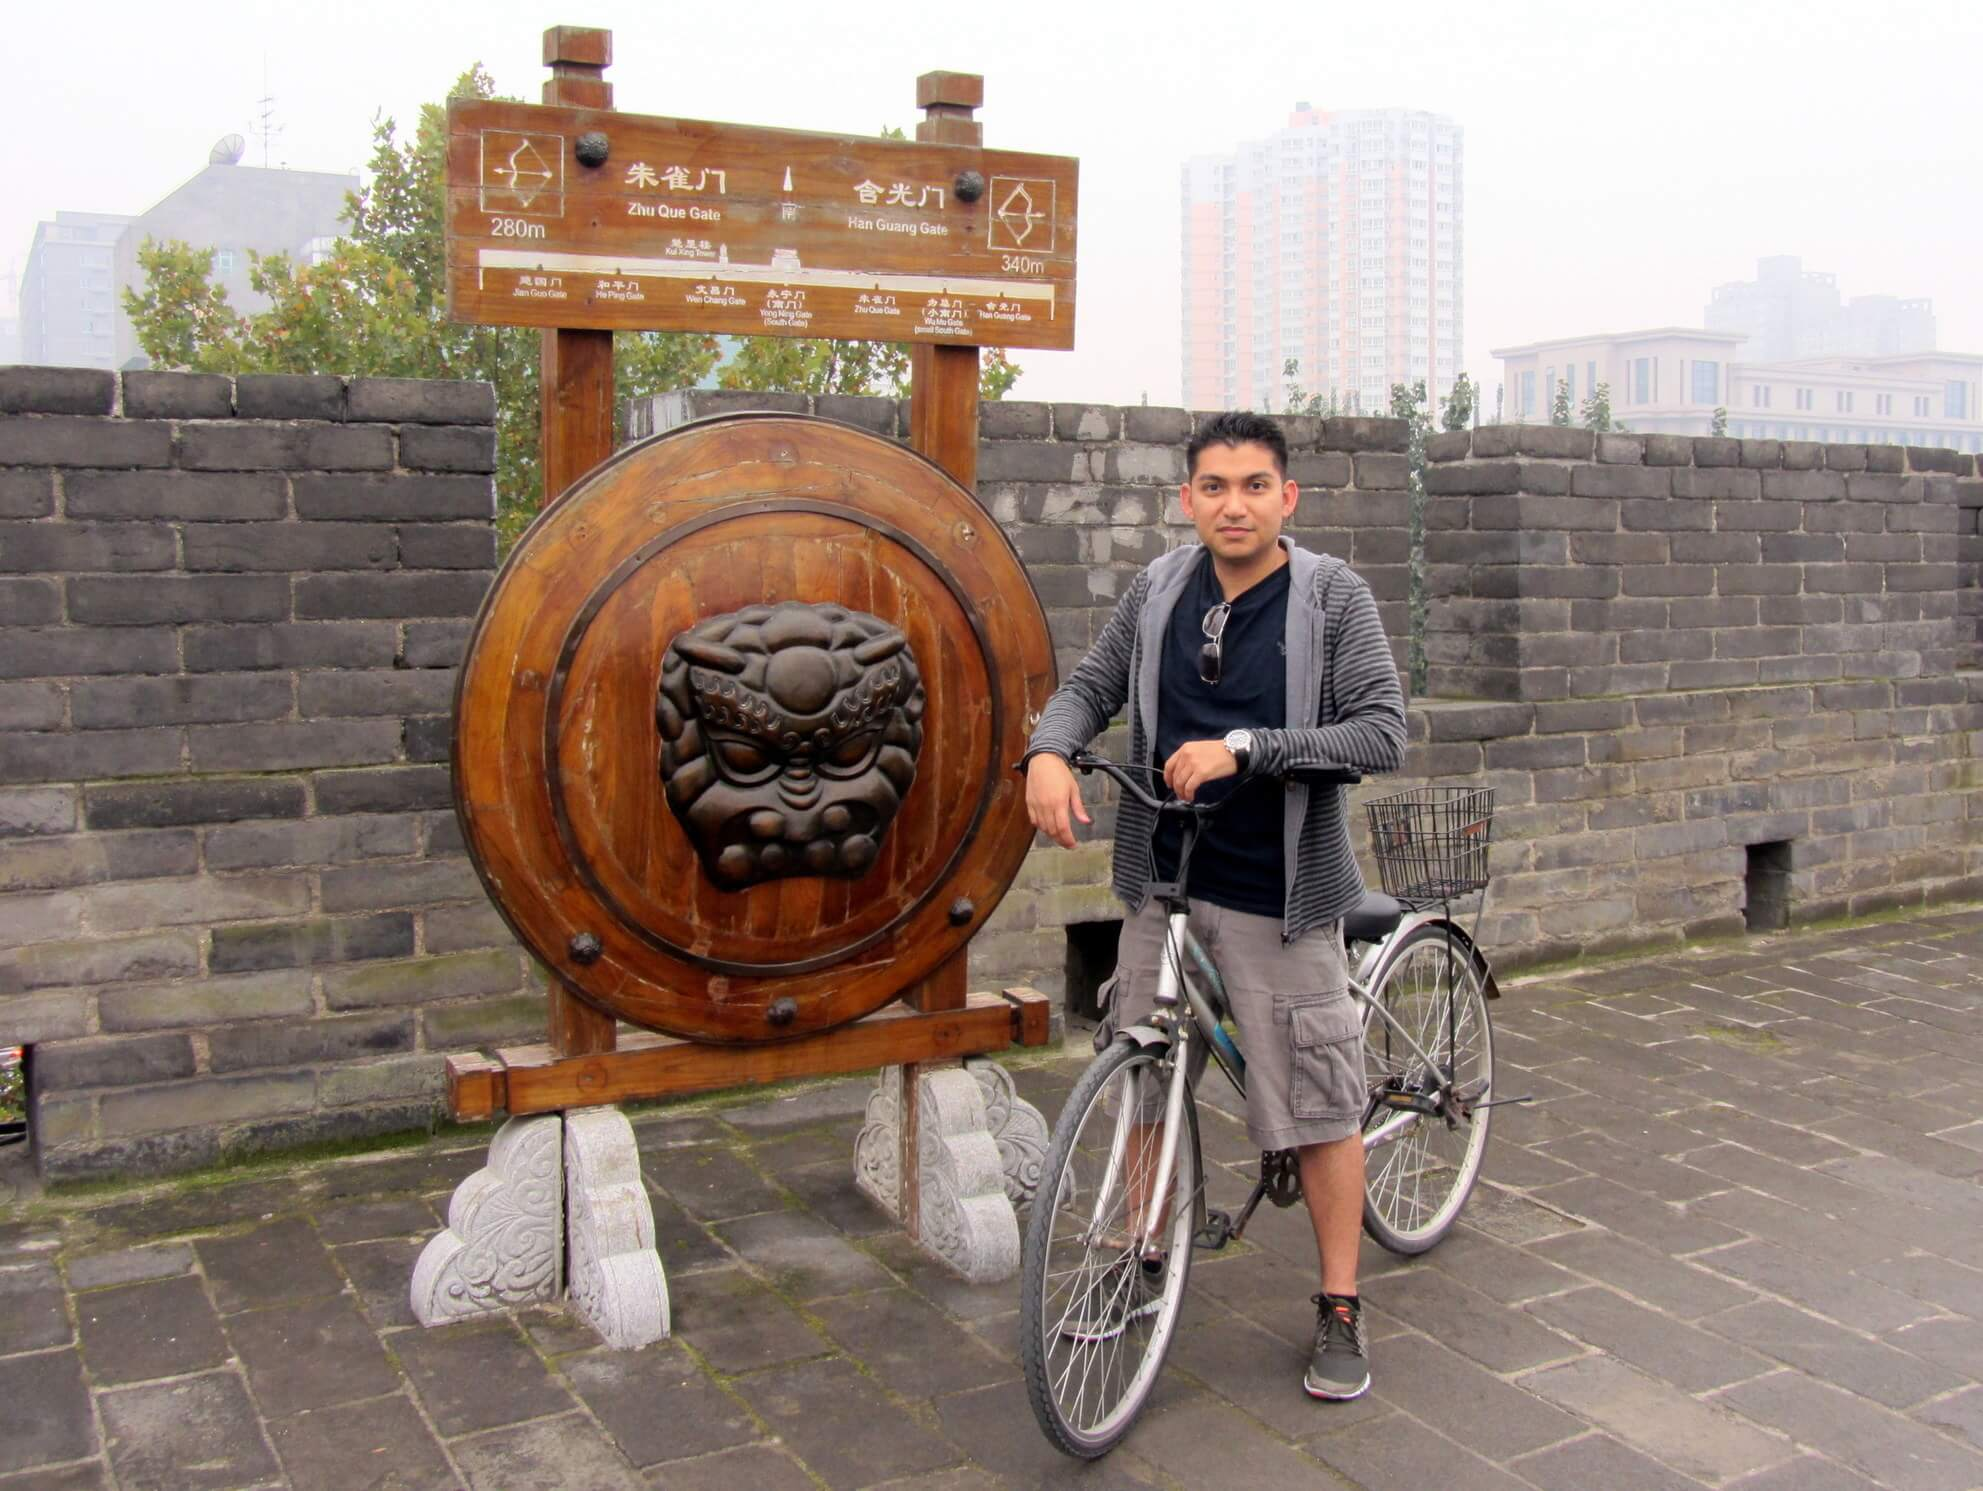 Adonis Salazar at Xi'an City Wall